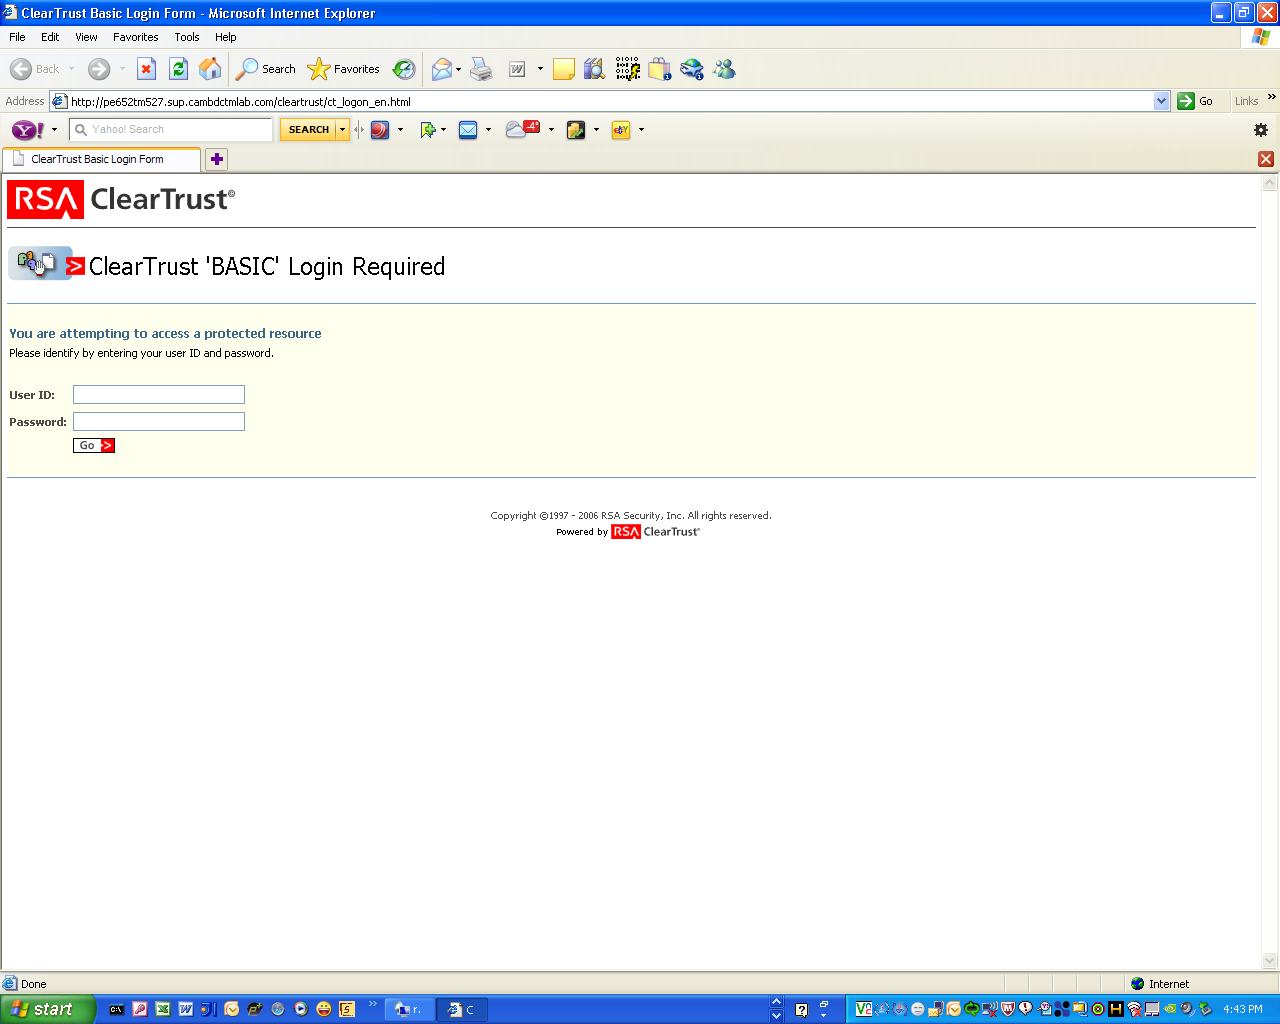 Figure 4. ClearTrust login Note: The RSA ClearTrust user ID must be a valid Documentum user ID.